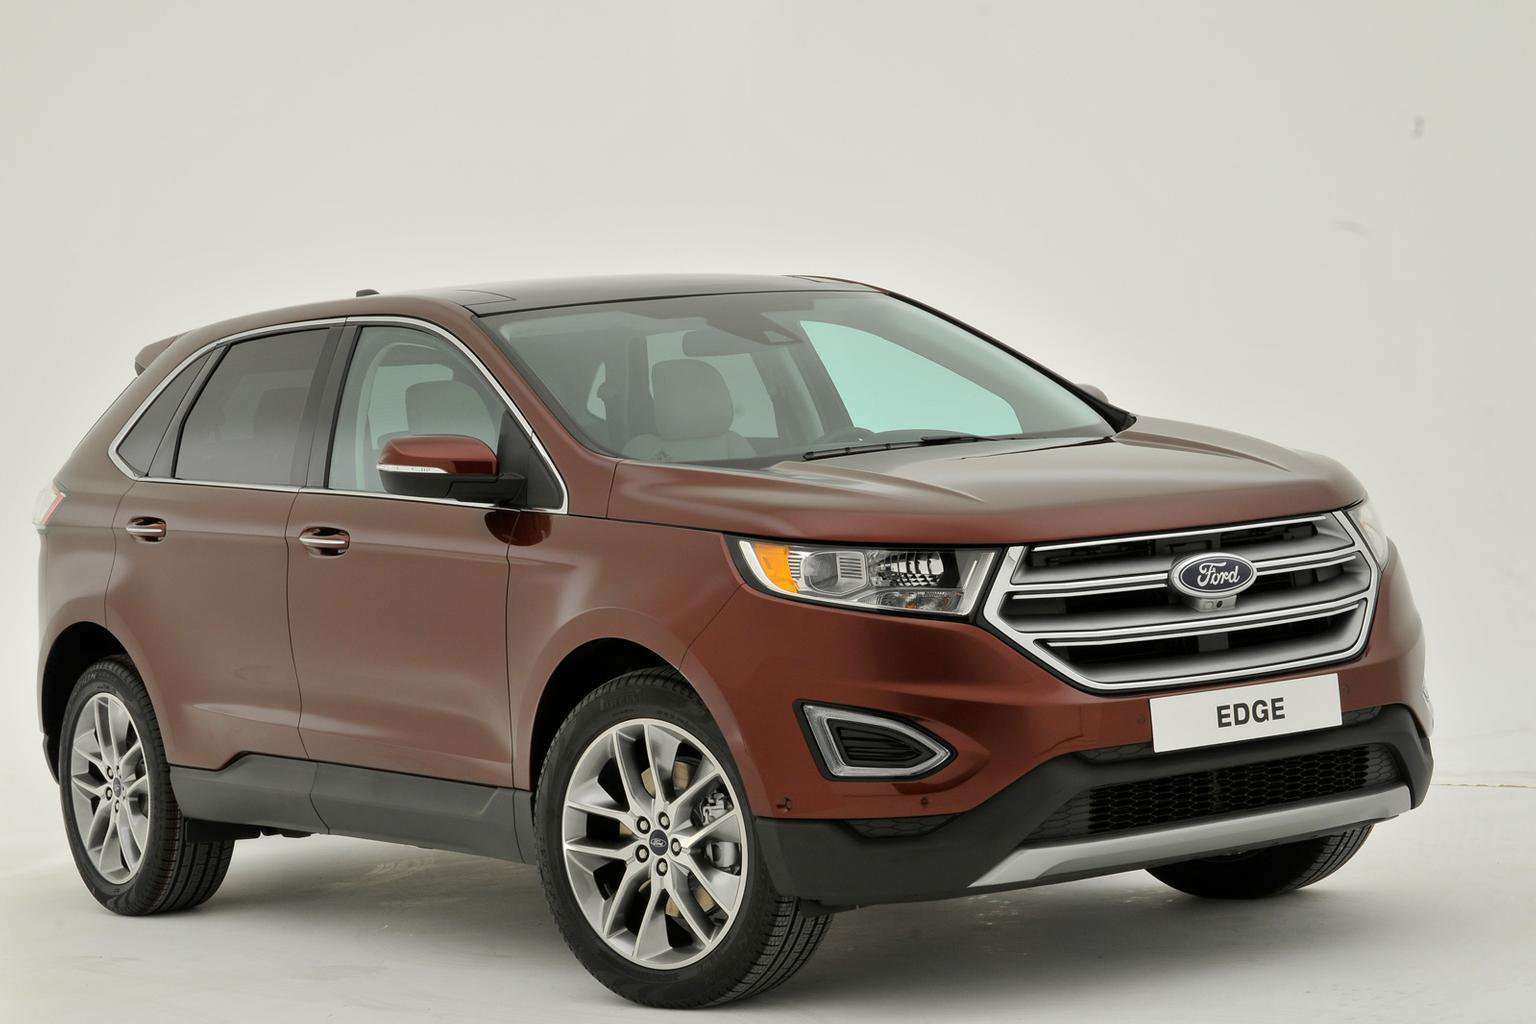 2016 Ford Edge SUV - on-sale date, specs and engines | What Car?